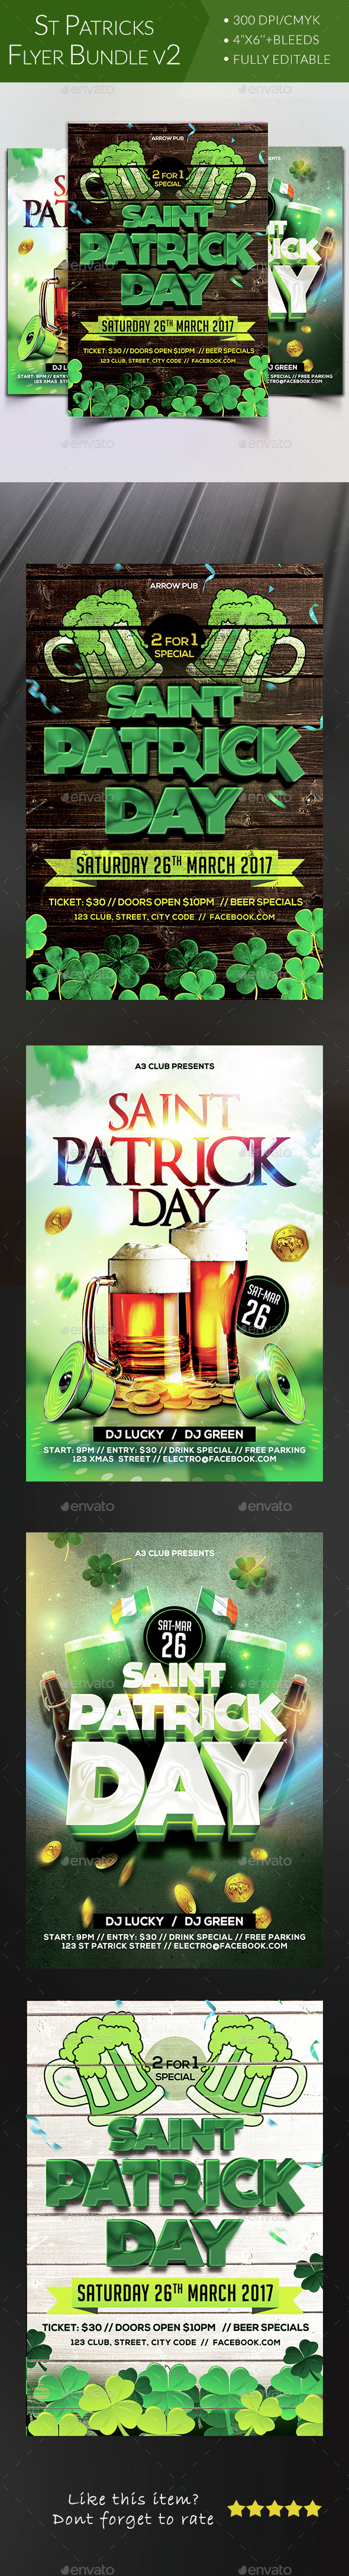 St Patricks Day Flyer Bundle V2 - Clubs & Parties Events